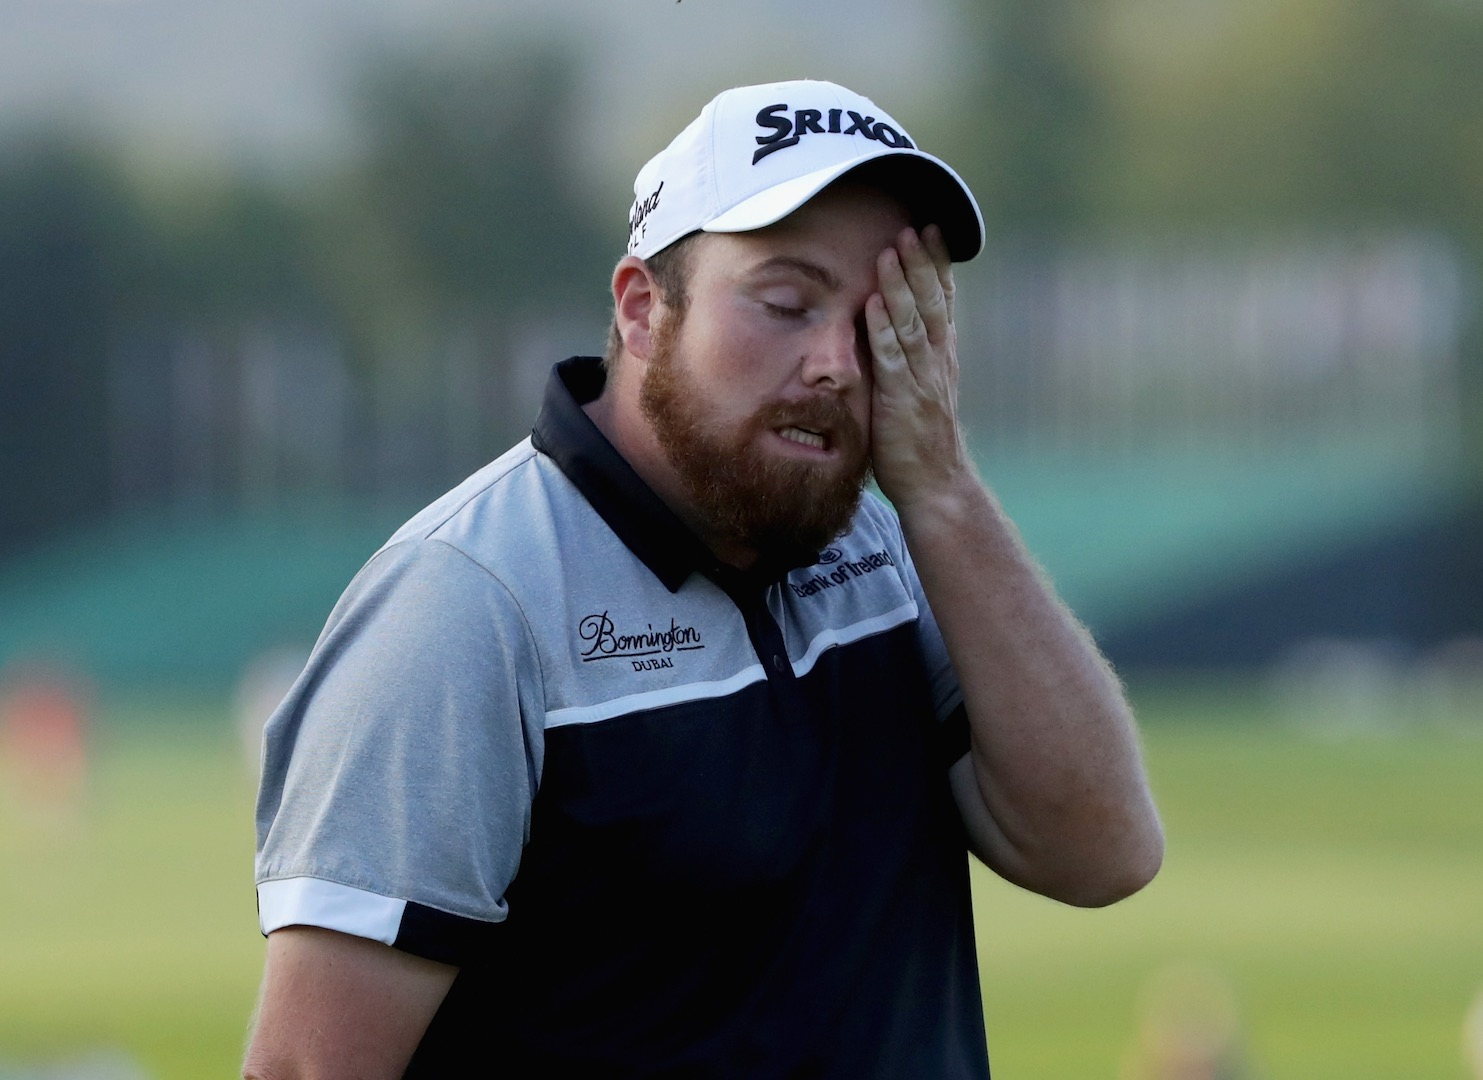 Shane Lowry out of Olympics